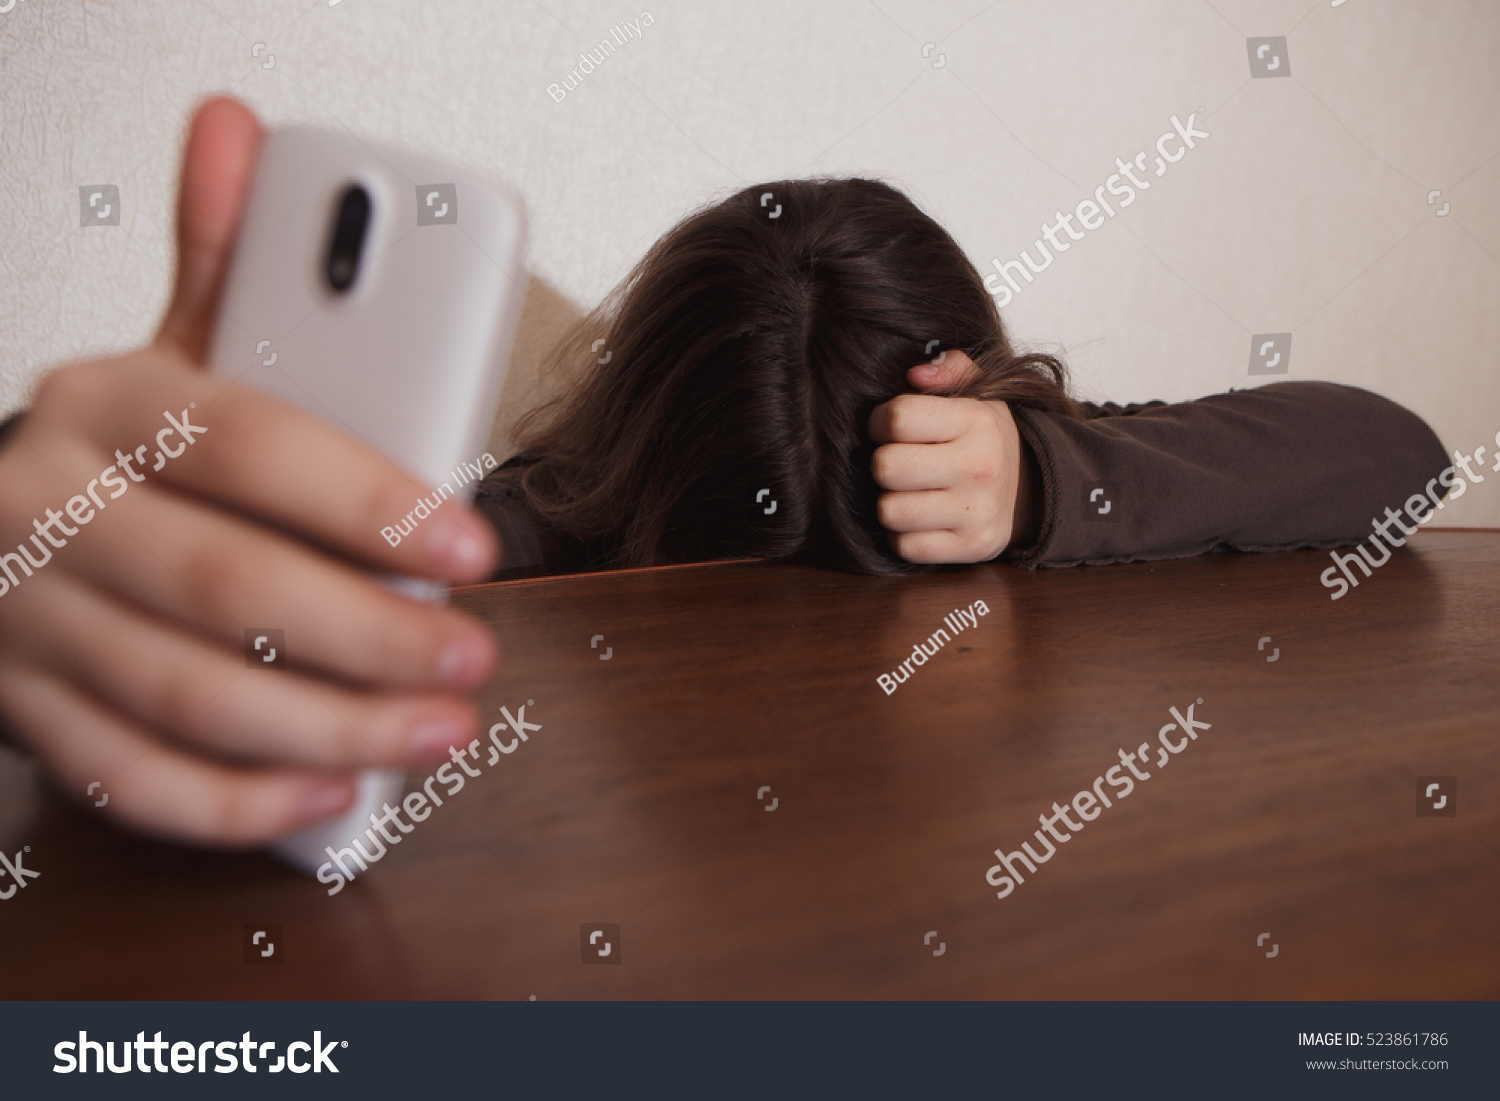 Desperate to use the bathroom - Young Sad Vulnerable Girl Using Mobile Phone Scared And Desperate Suffering Online Abuse Cyberbullying Being Stalked